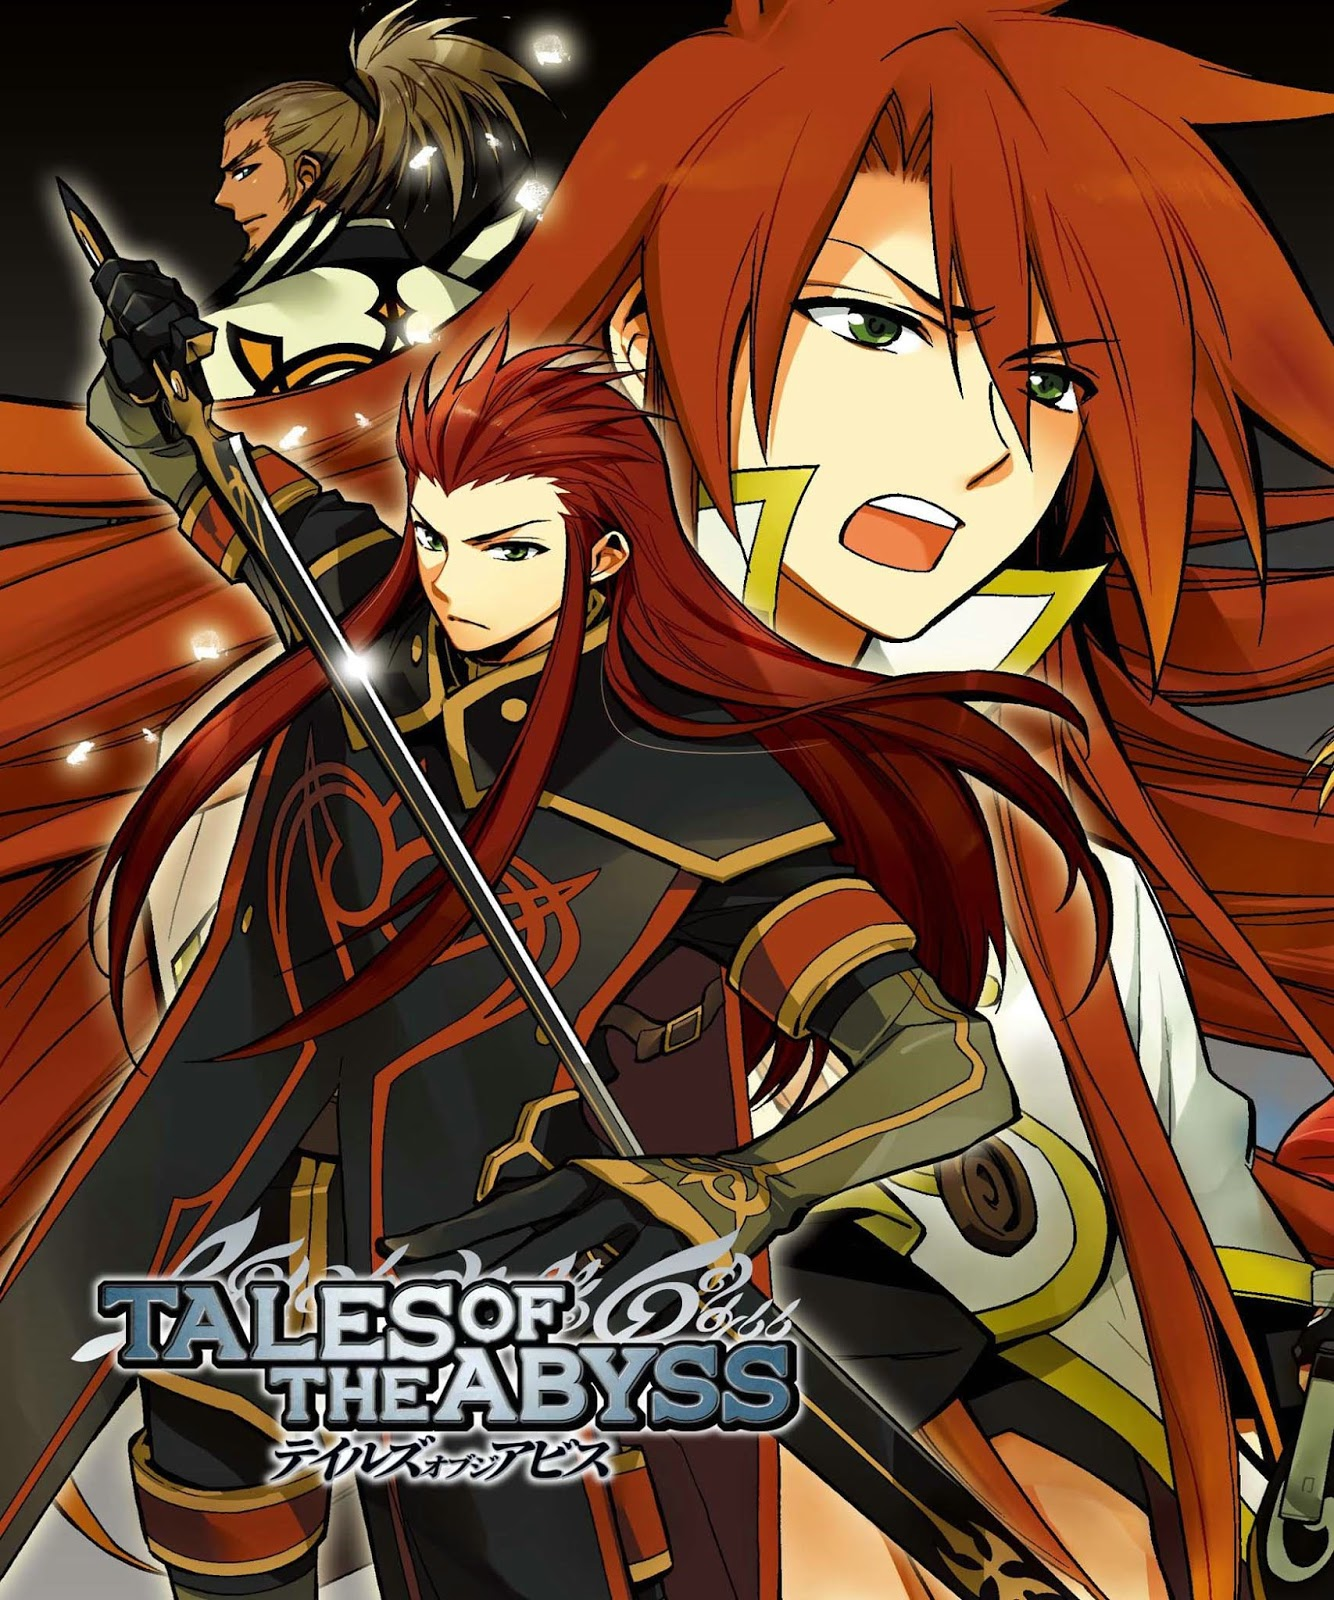 Huyền Thoại Hỏa Quang -Tales of the Abyss